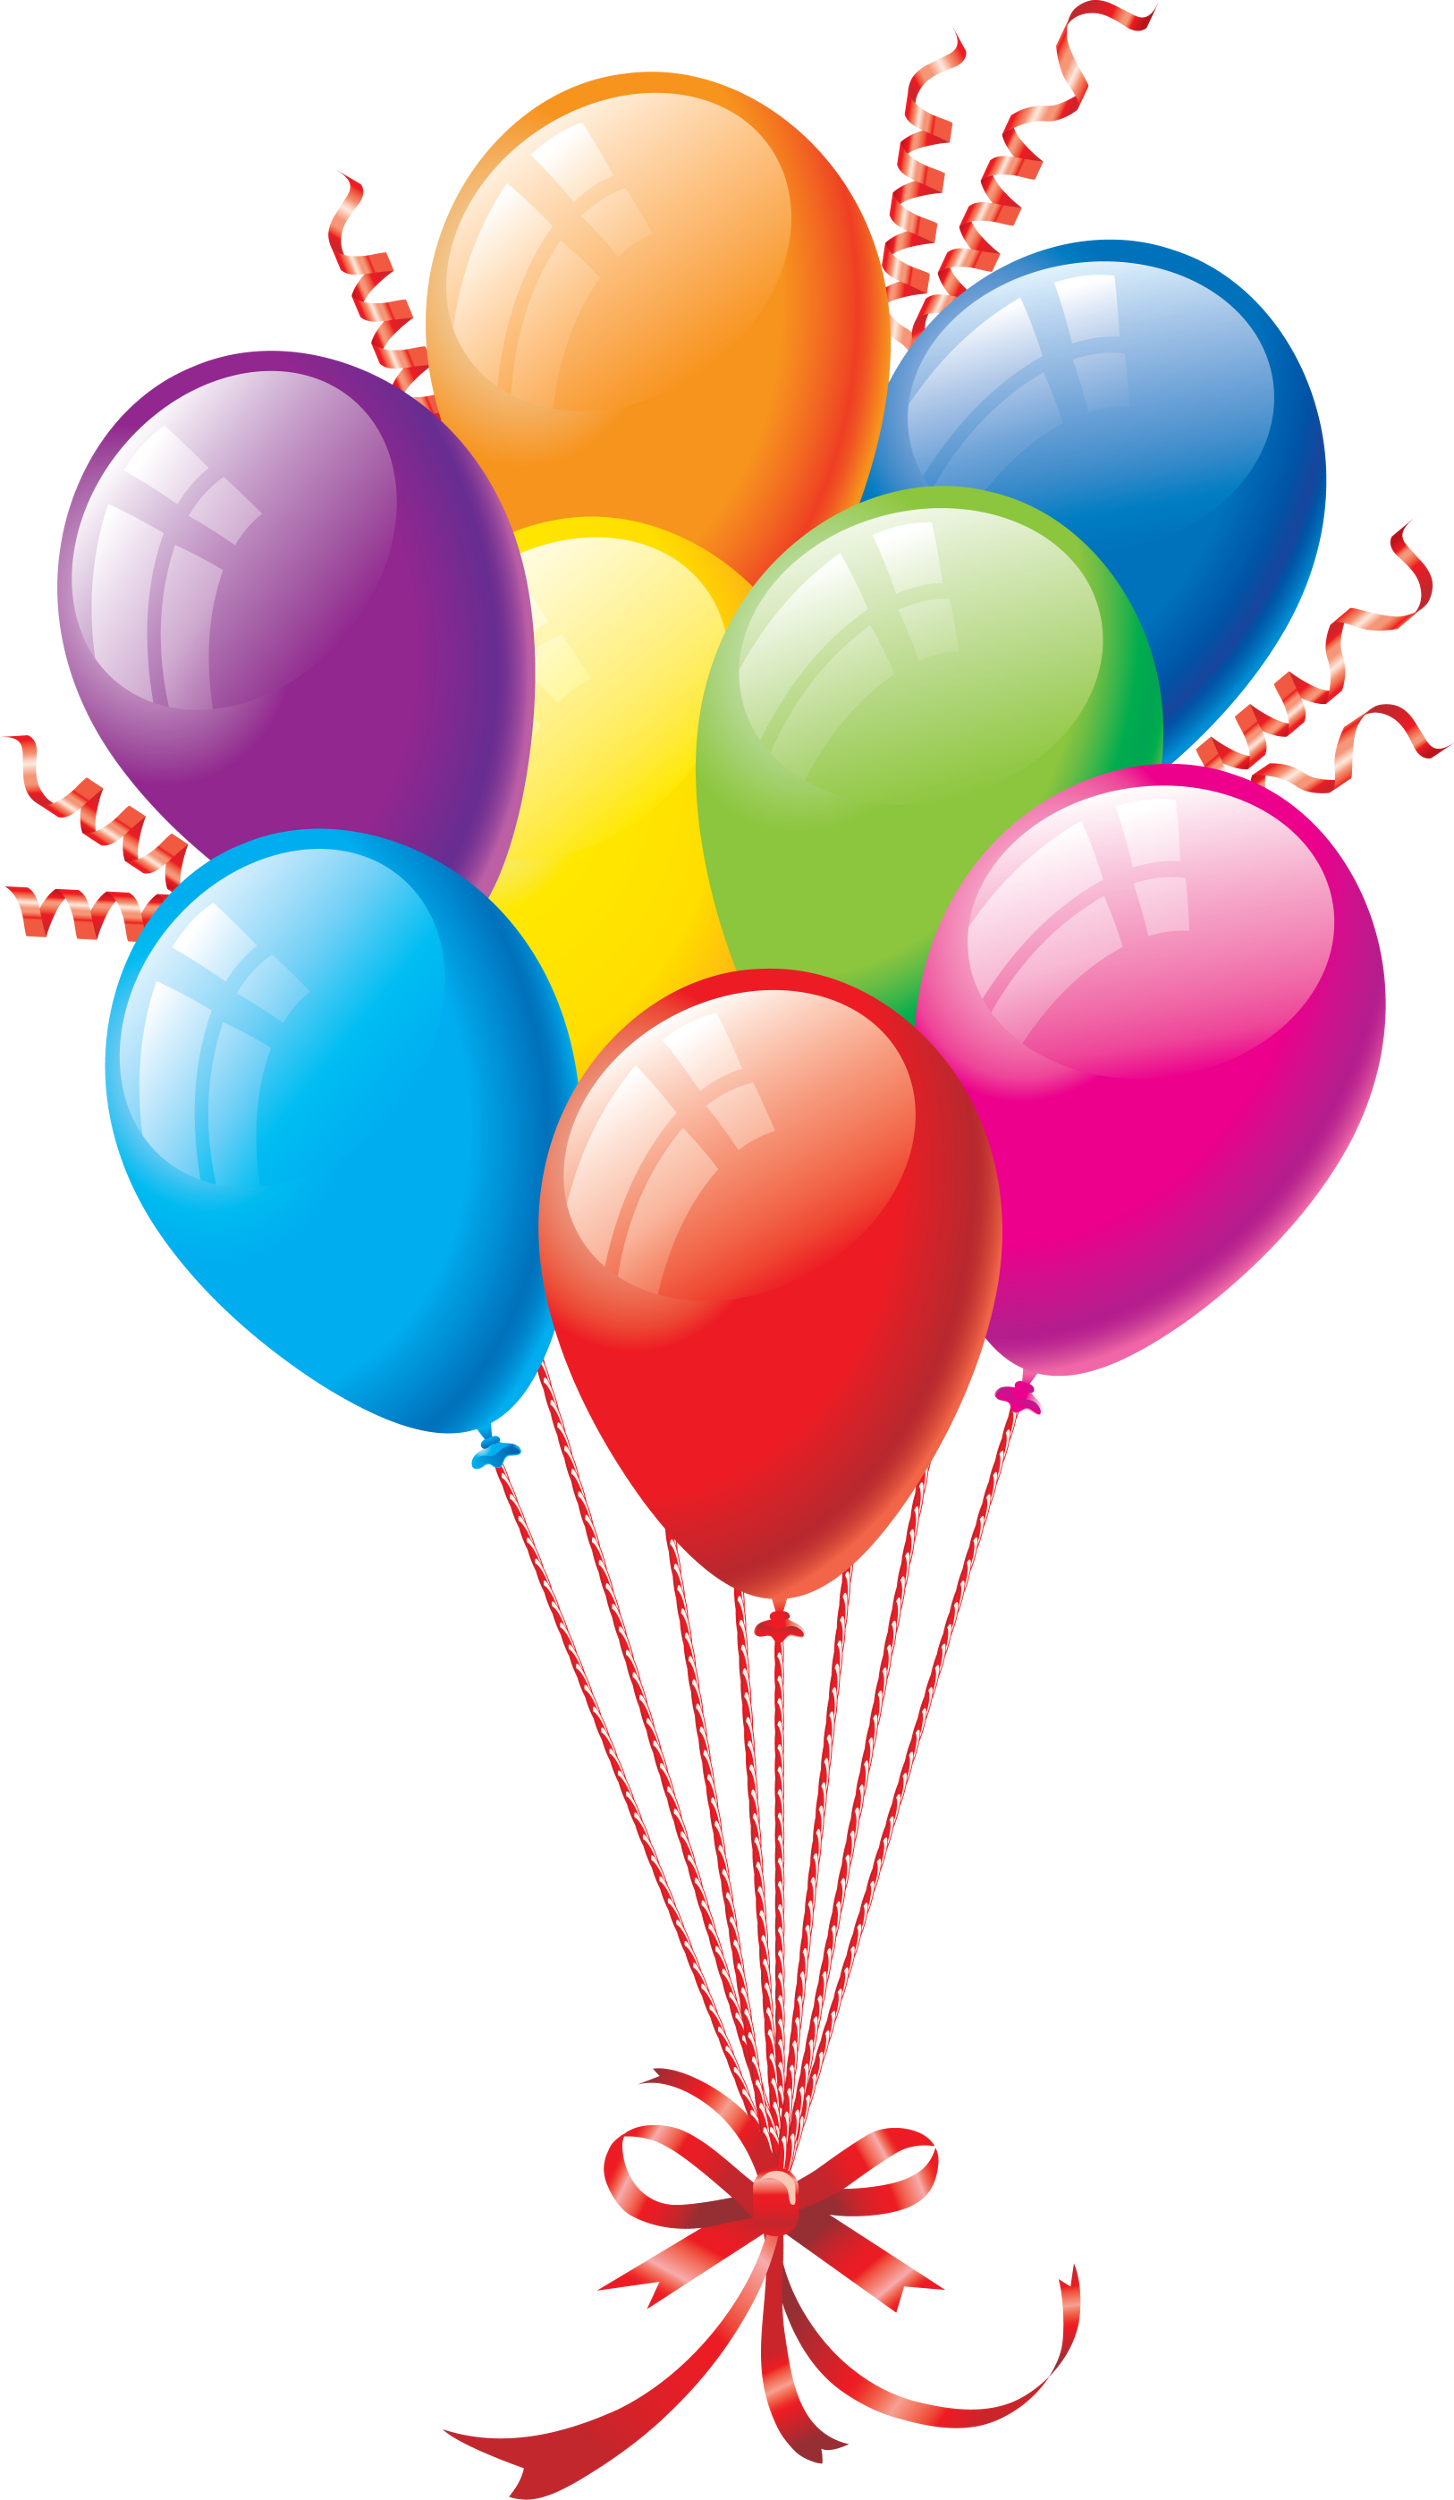 jpg royalty free download Birthday party png pesquisa. Baloon vector celebration